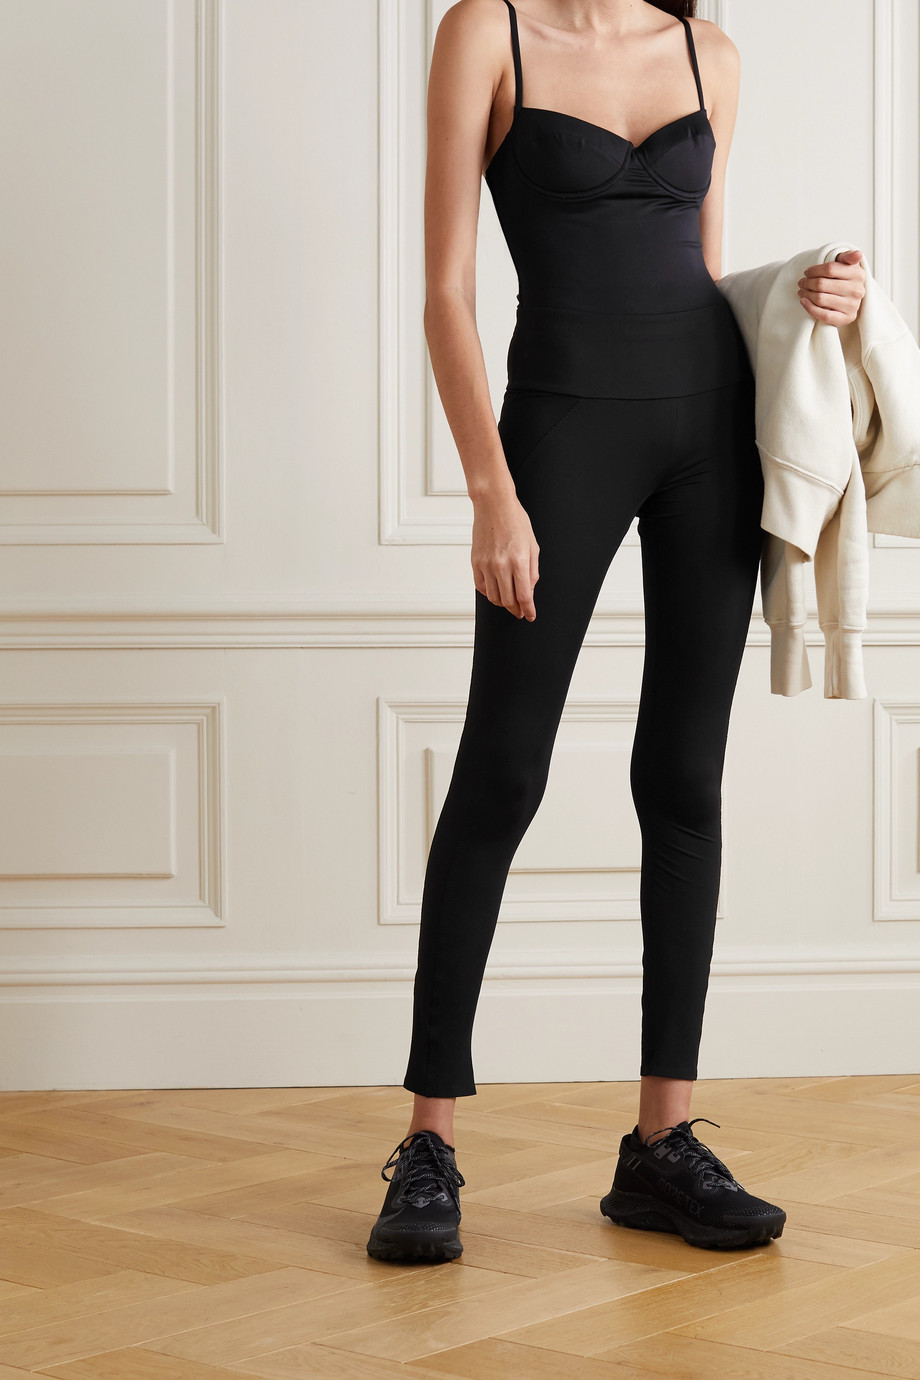 ERNEST LEOTY Perform high-rise stretch leggings